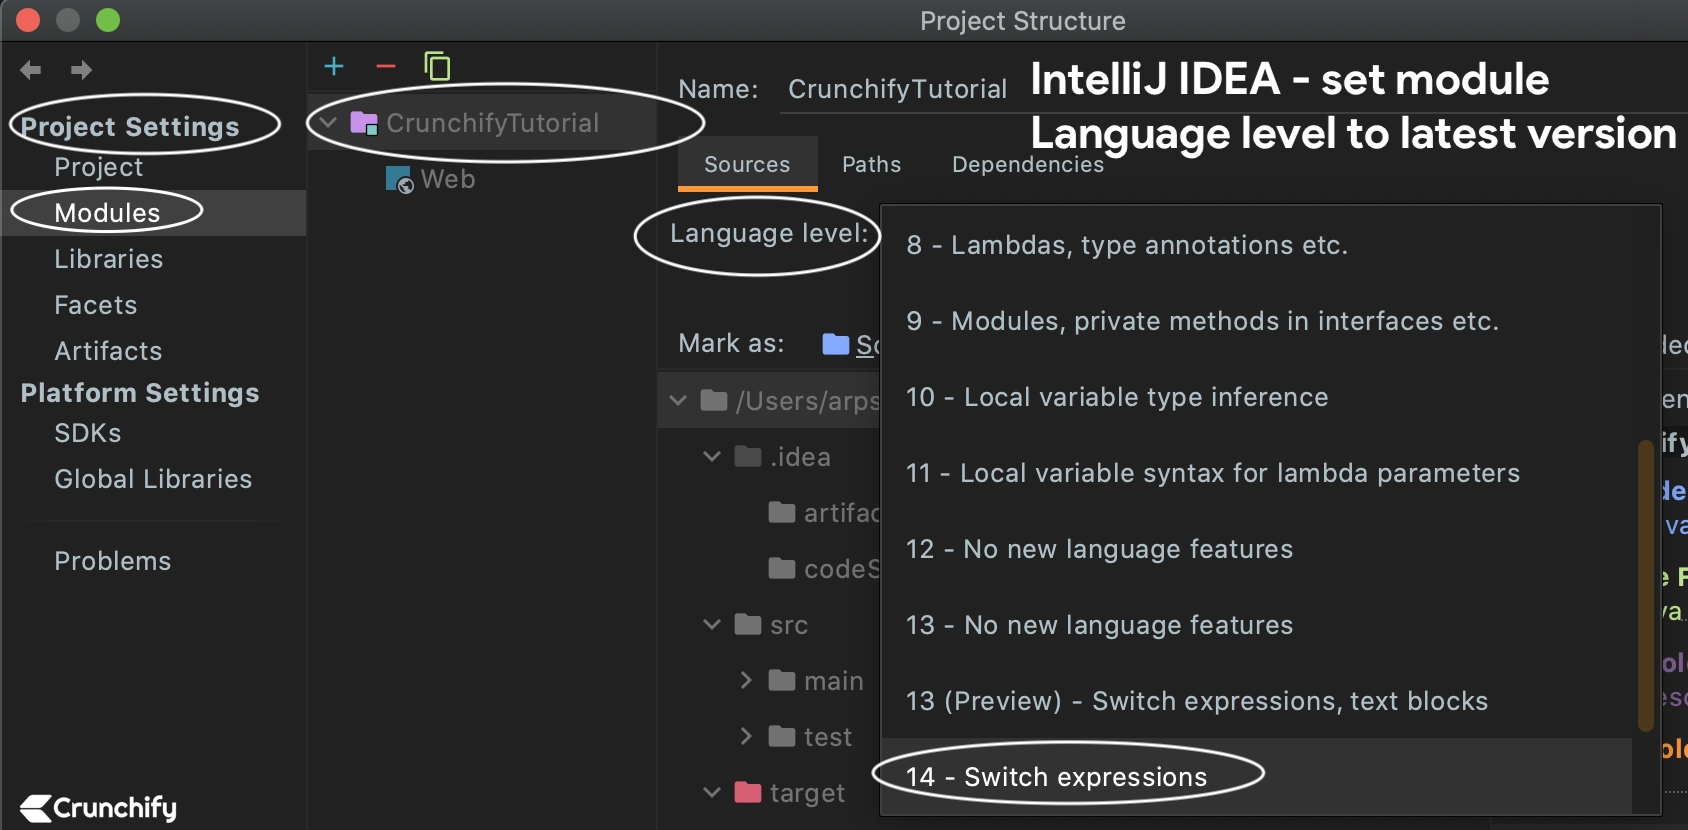 IntelliJ IDEA - set module Language level to latest version